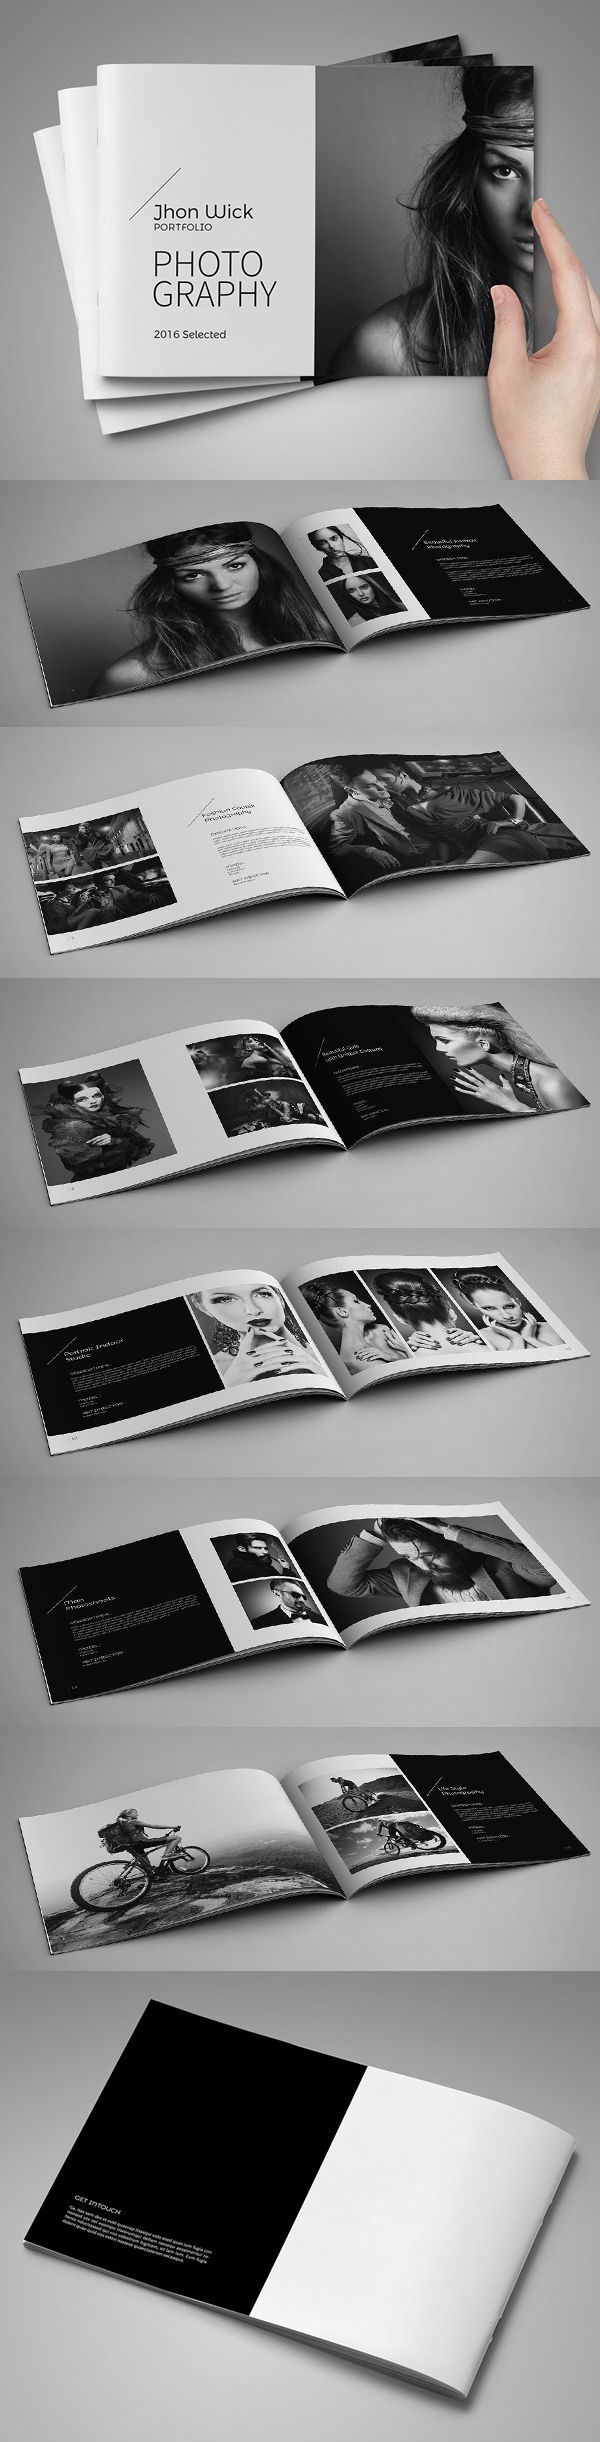 portfolio photobook brochure template design inspiration publication design pinterest. Black Bedroom Furniture Sets. Home Design Ideas